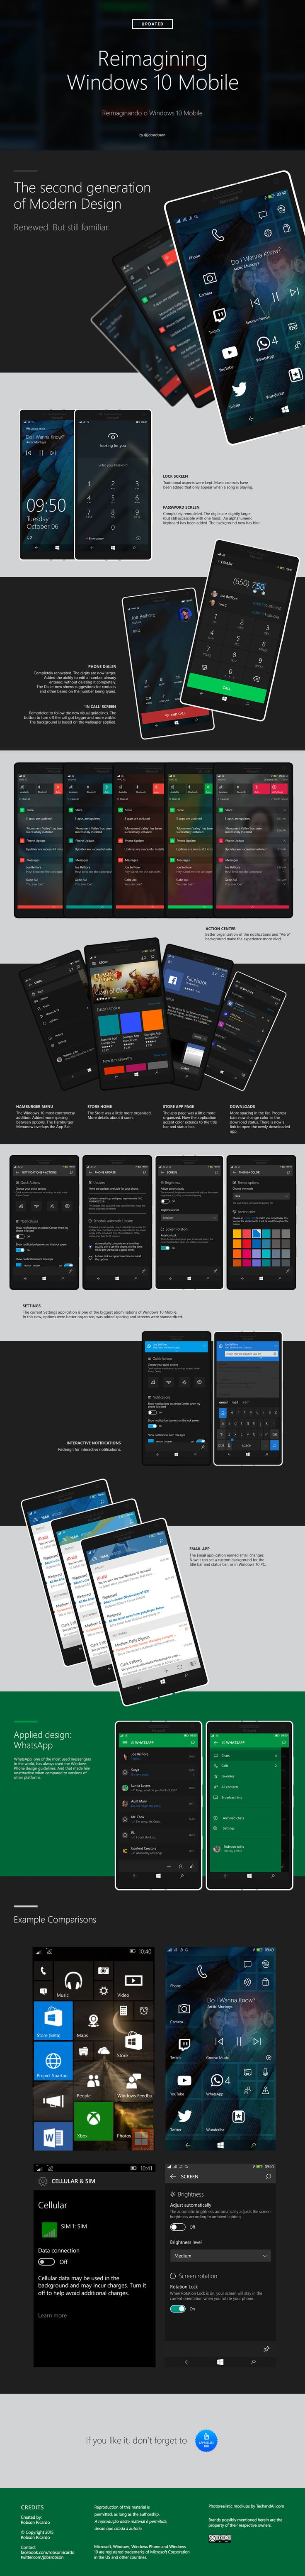 Reimagining Windows 10 Mobile [Update 2] on Behance